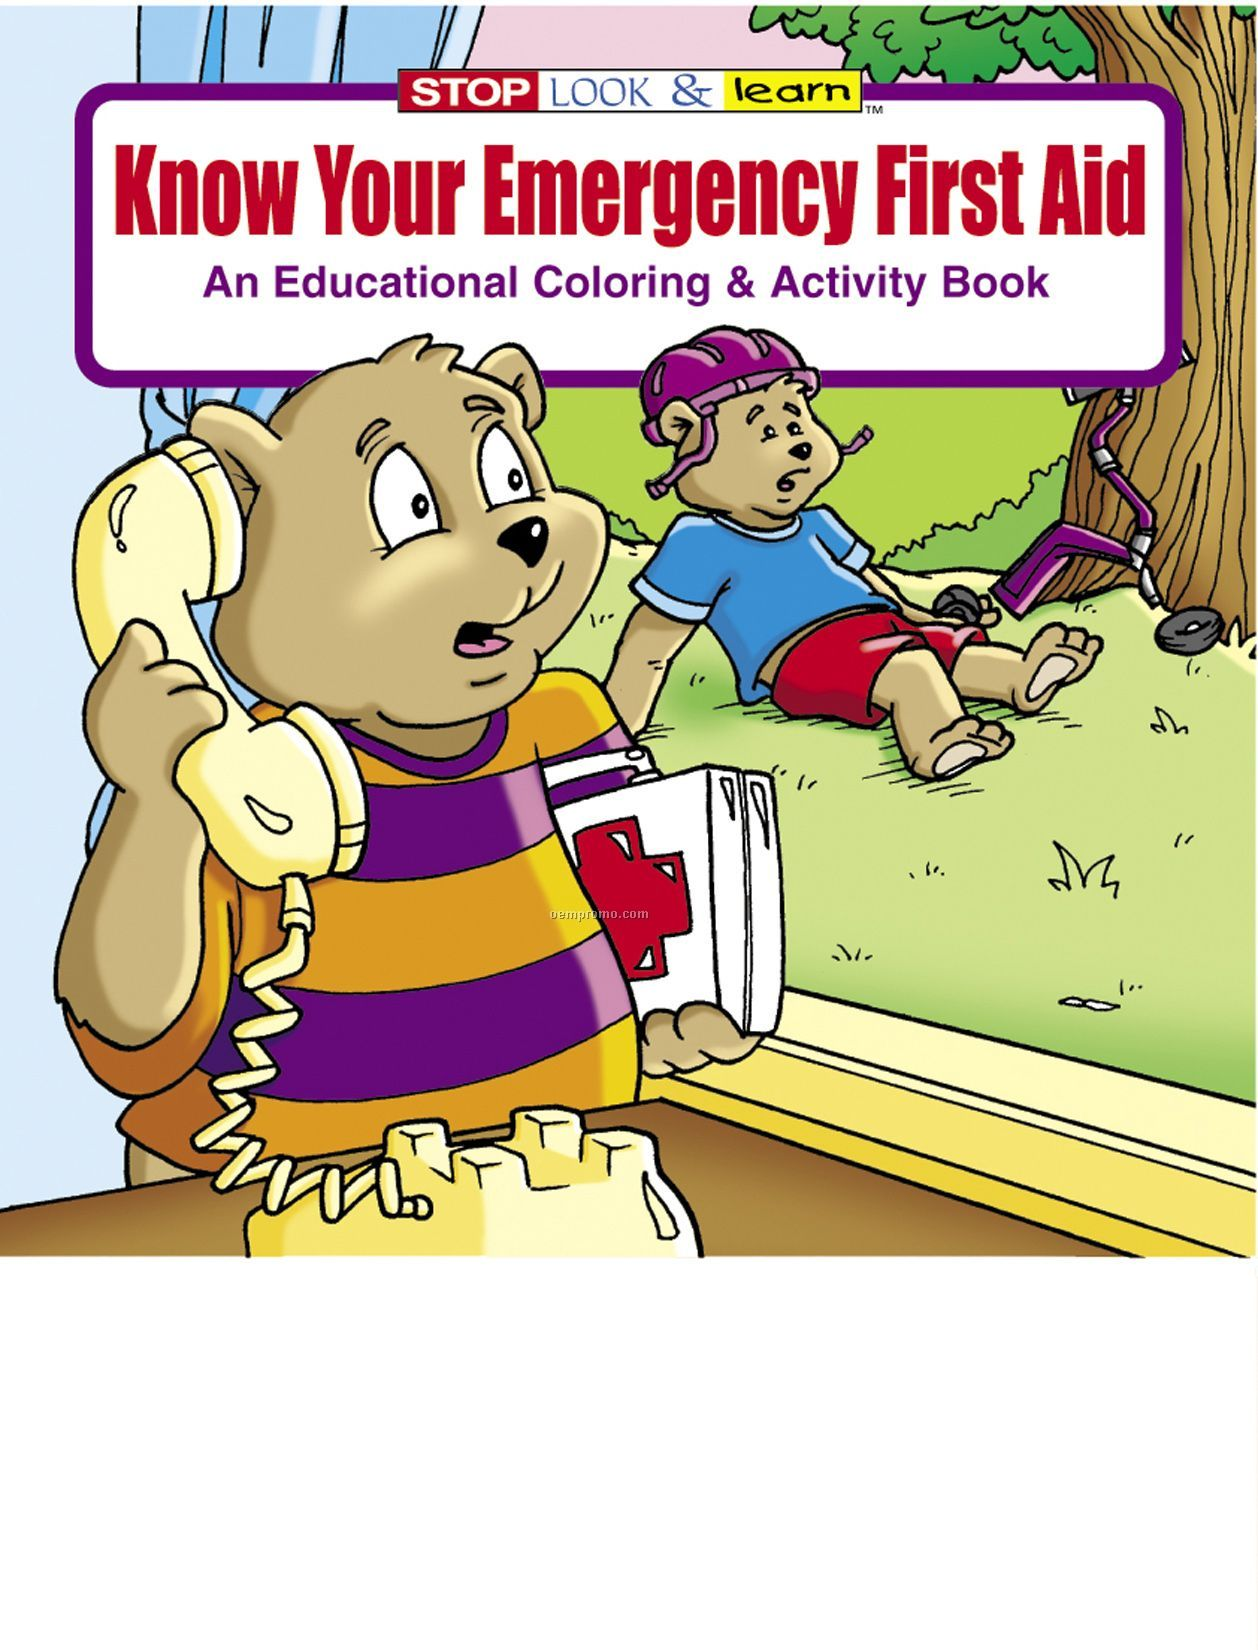 know your emergency first aid coloring book fun pack - Aid Coloring Pages Kids